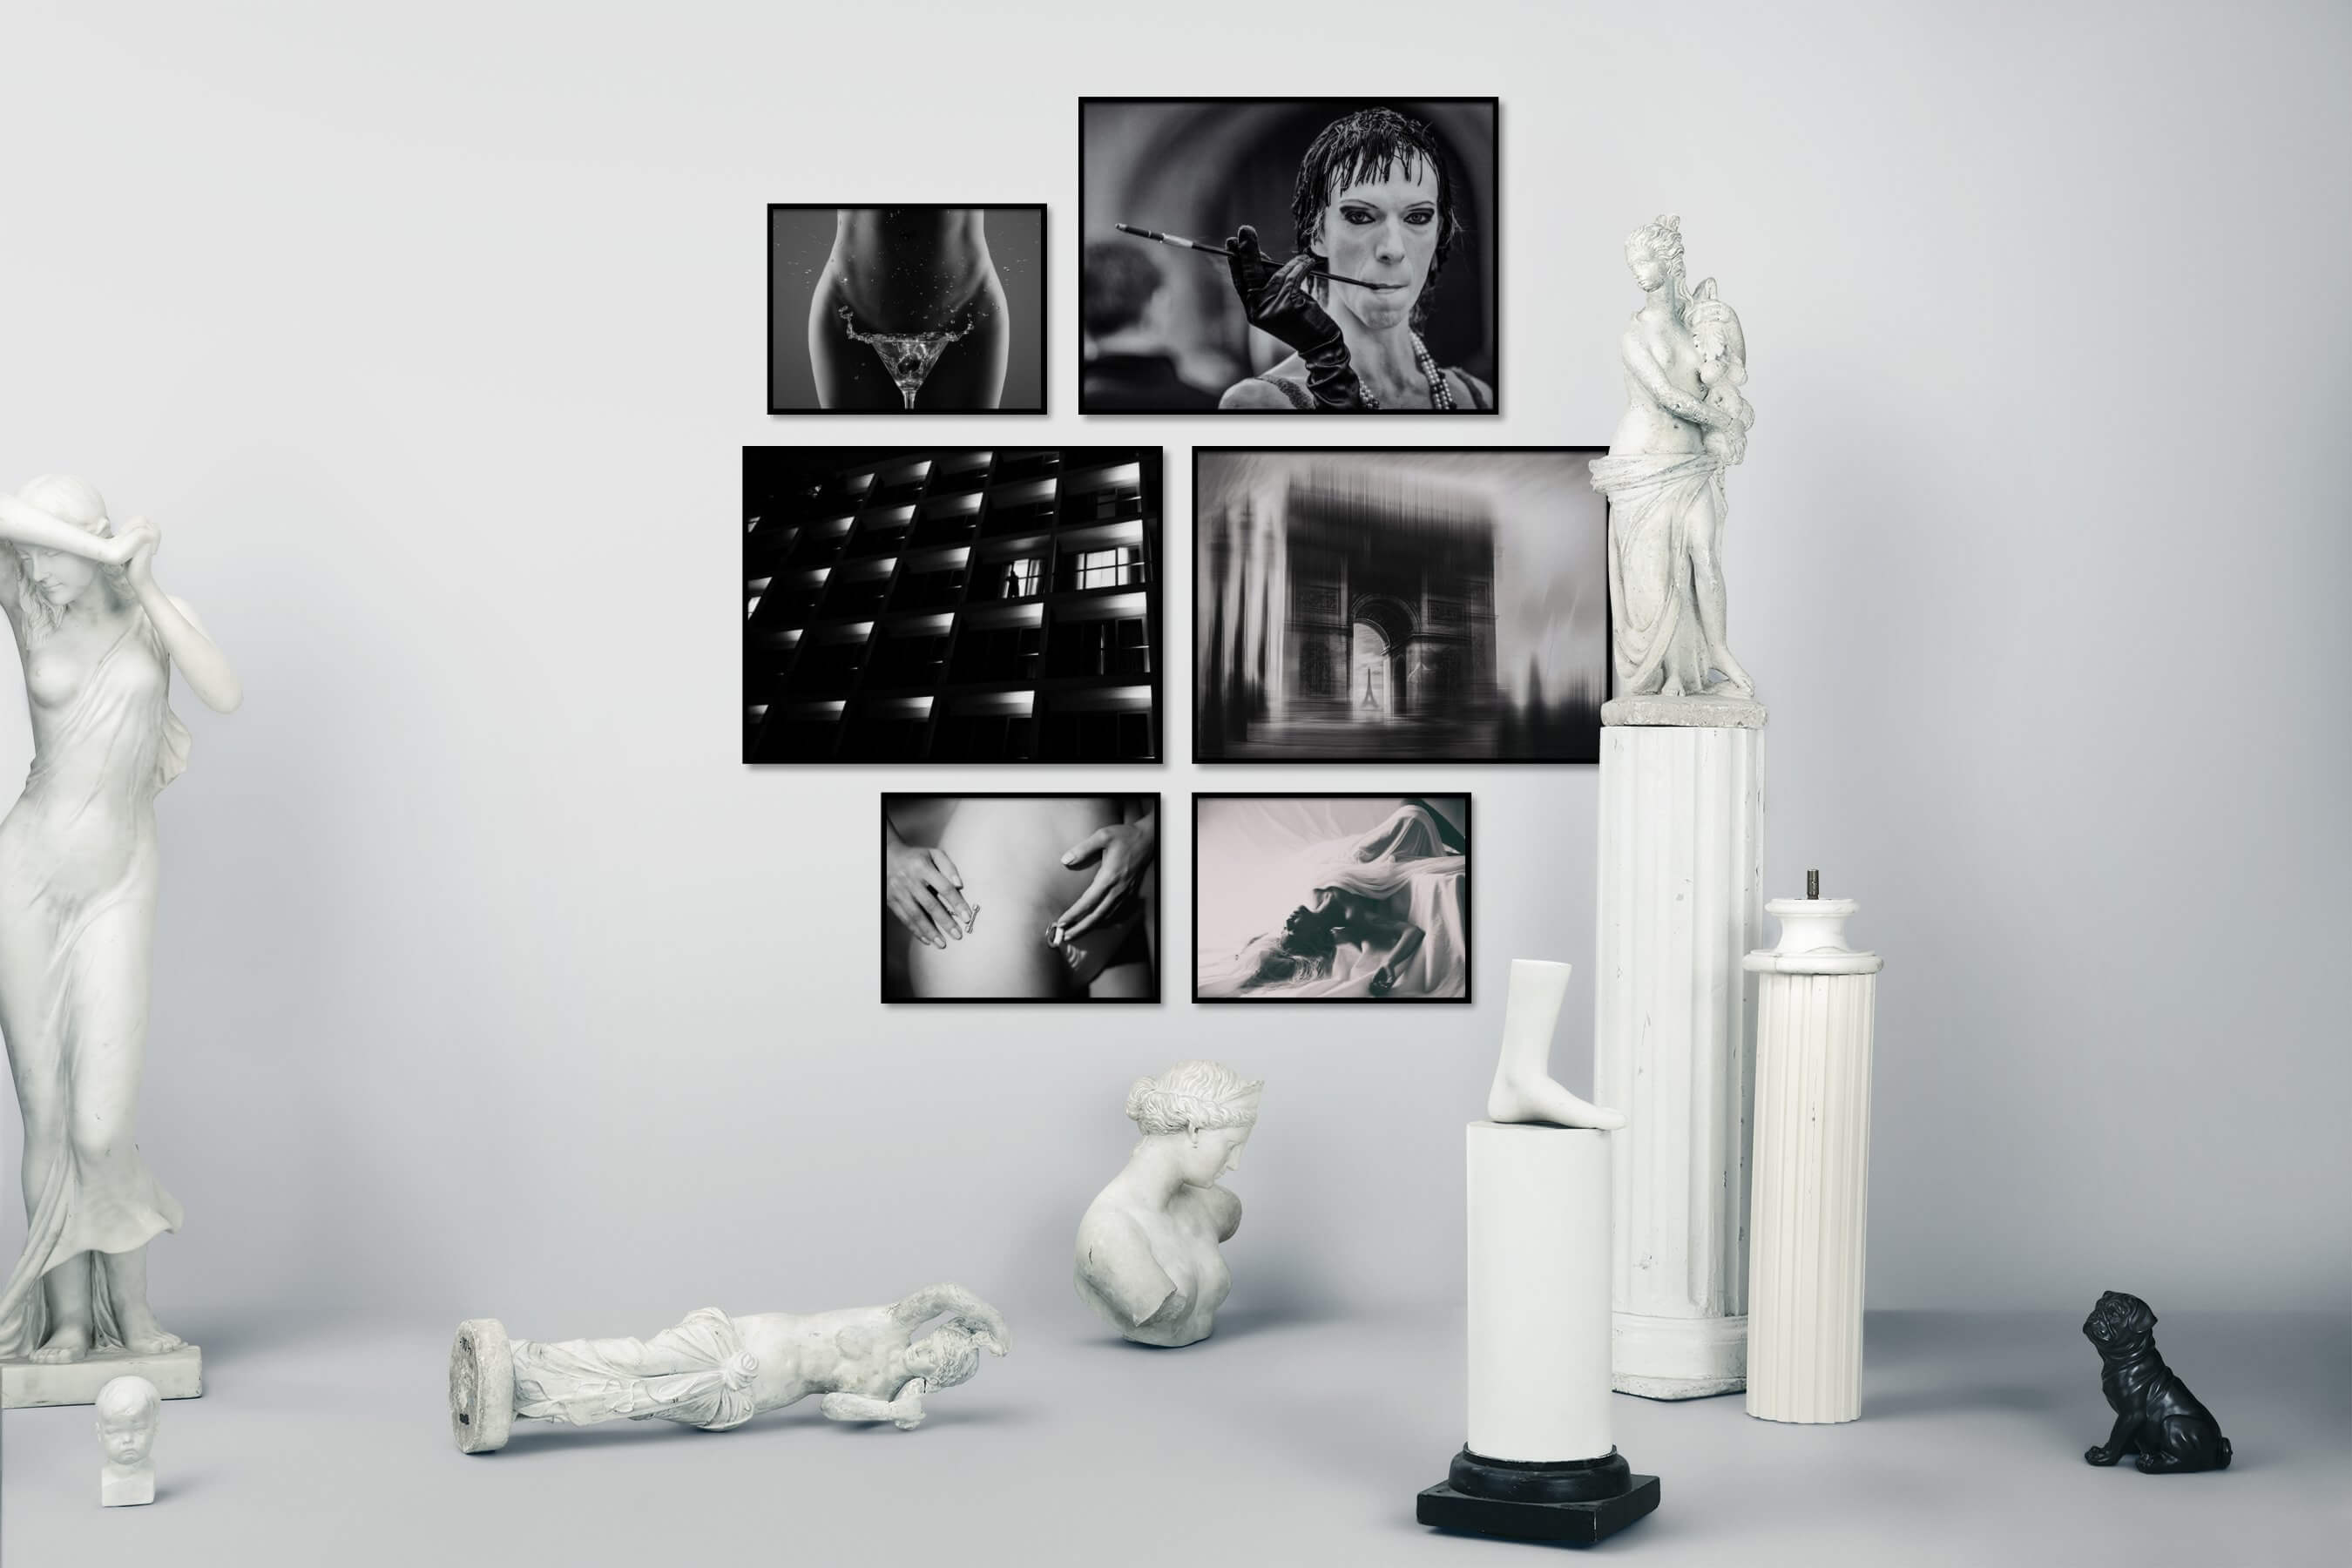 Gallery wall idea with six framed pictures arranged on a wall depicting Fashion & Beauty, Black & White, For the Moderate, and City Life